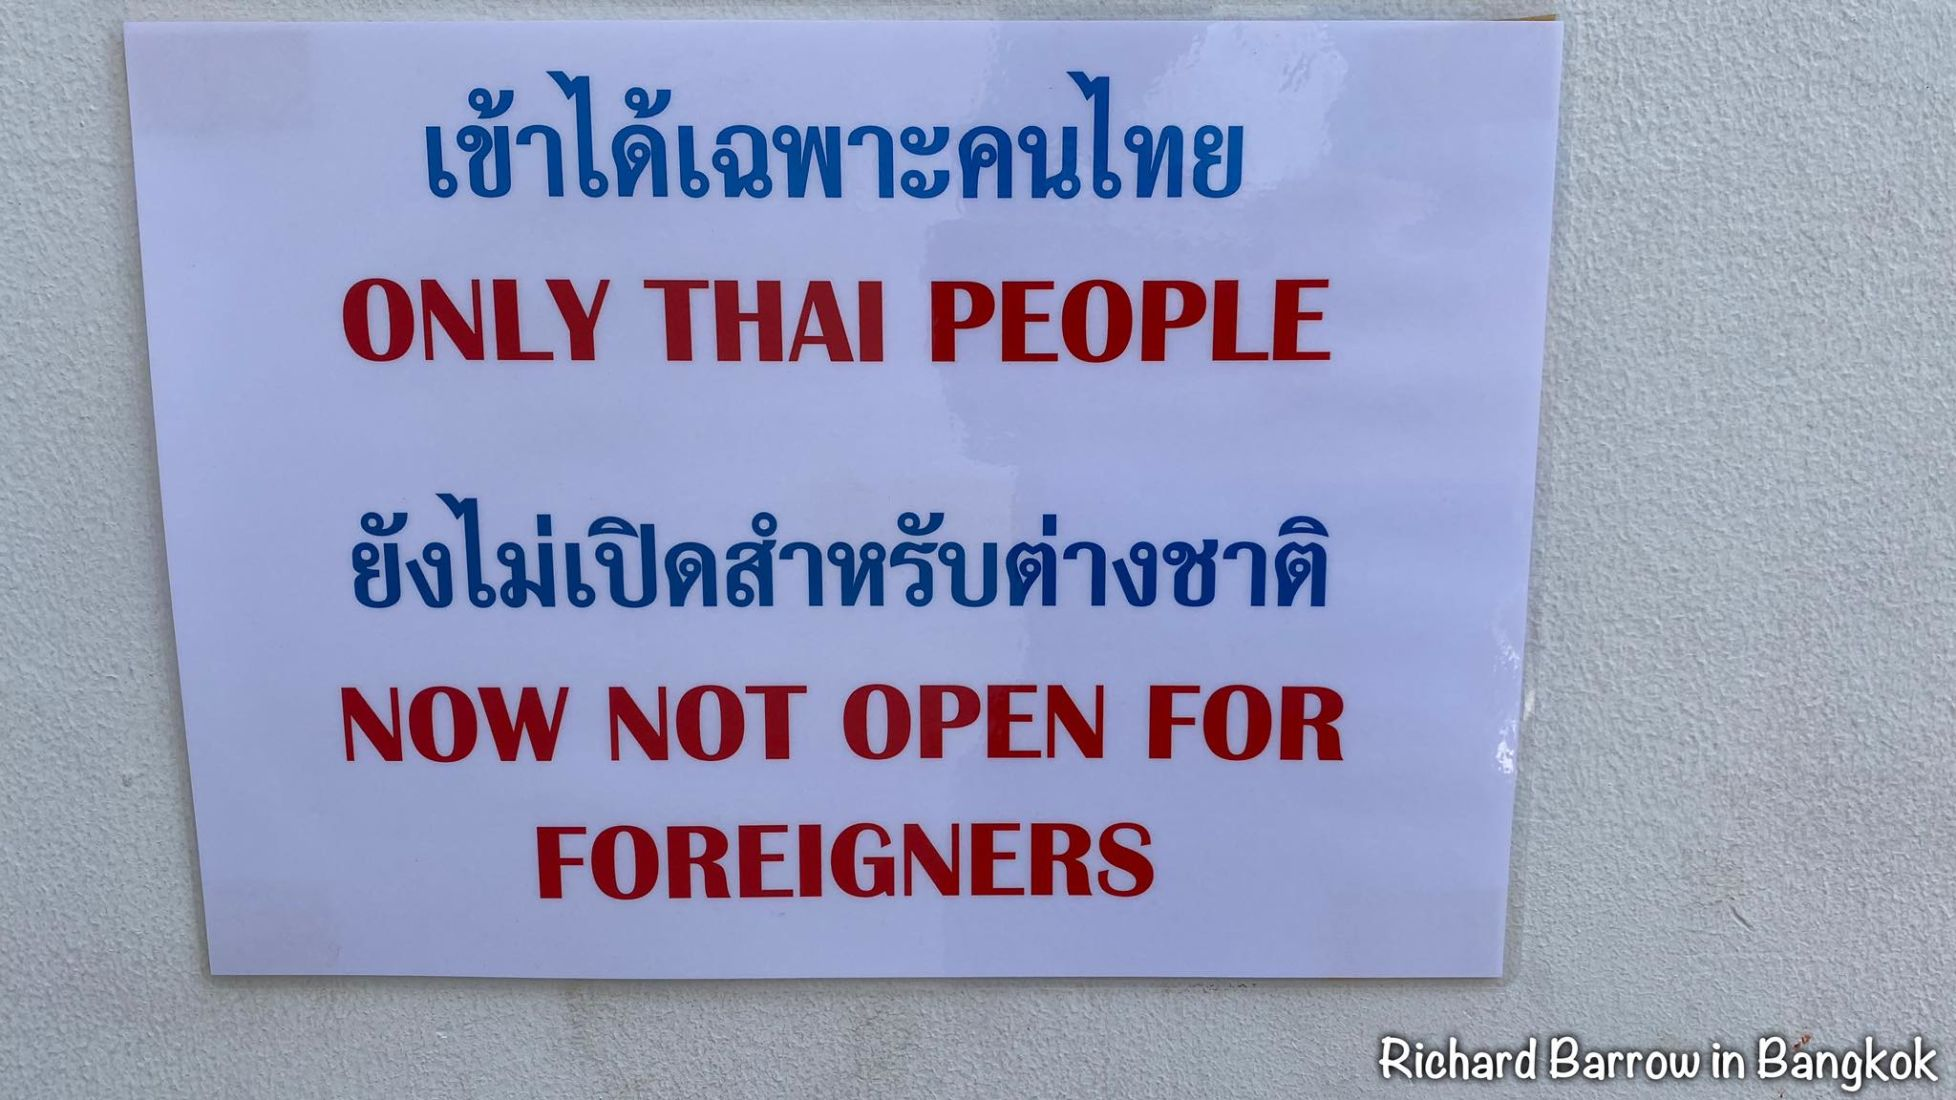 No foreigners at Wat Pho, Bangkok temple says Thais only | The Thaiger